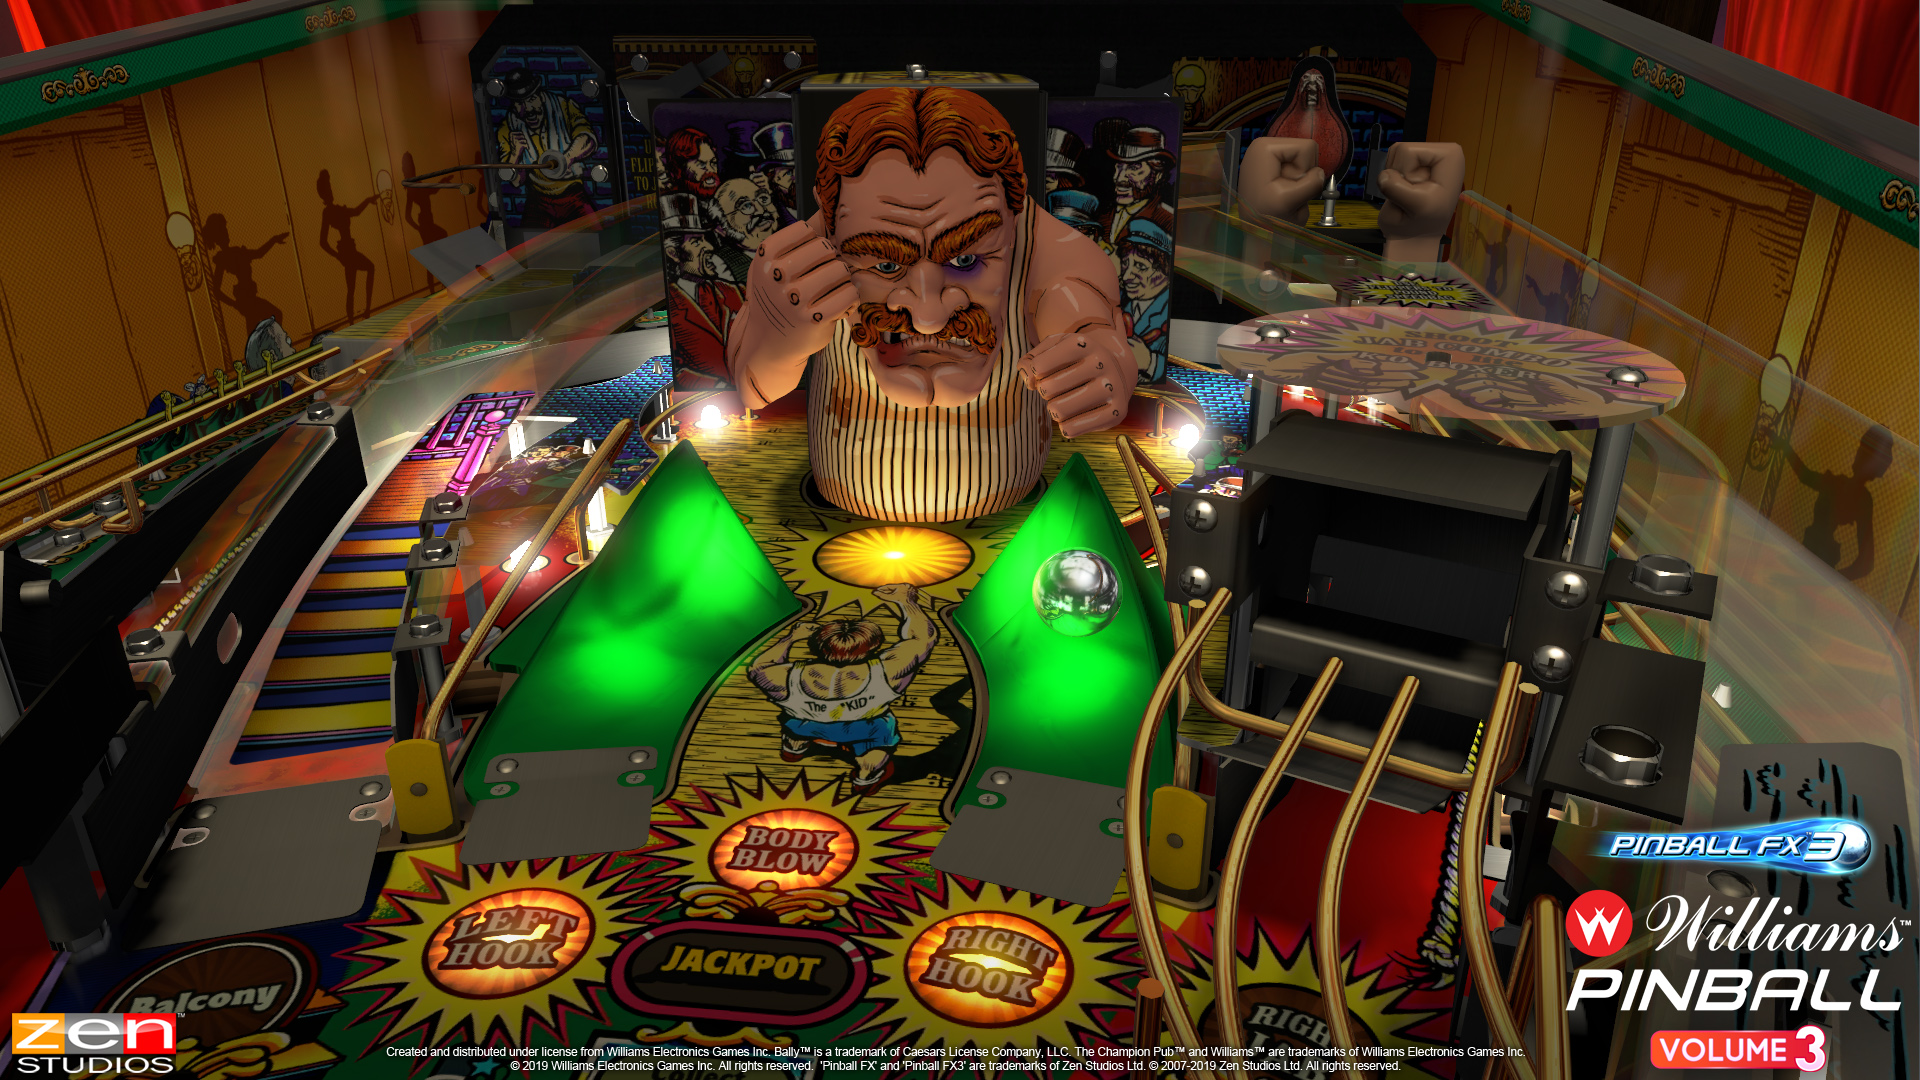 Pinball FX3 – Williams Pinball: Volume 3 Review | TheXboxHub